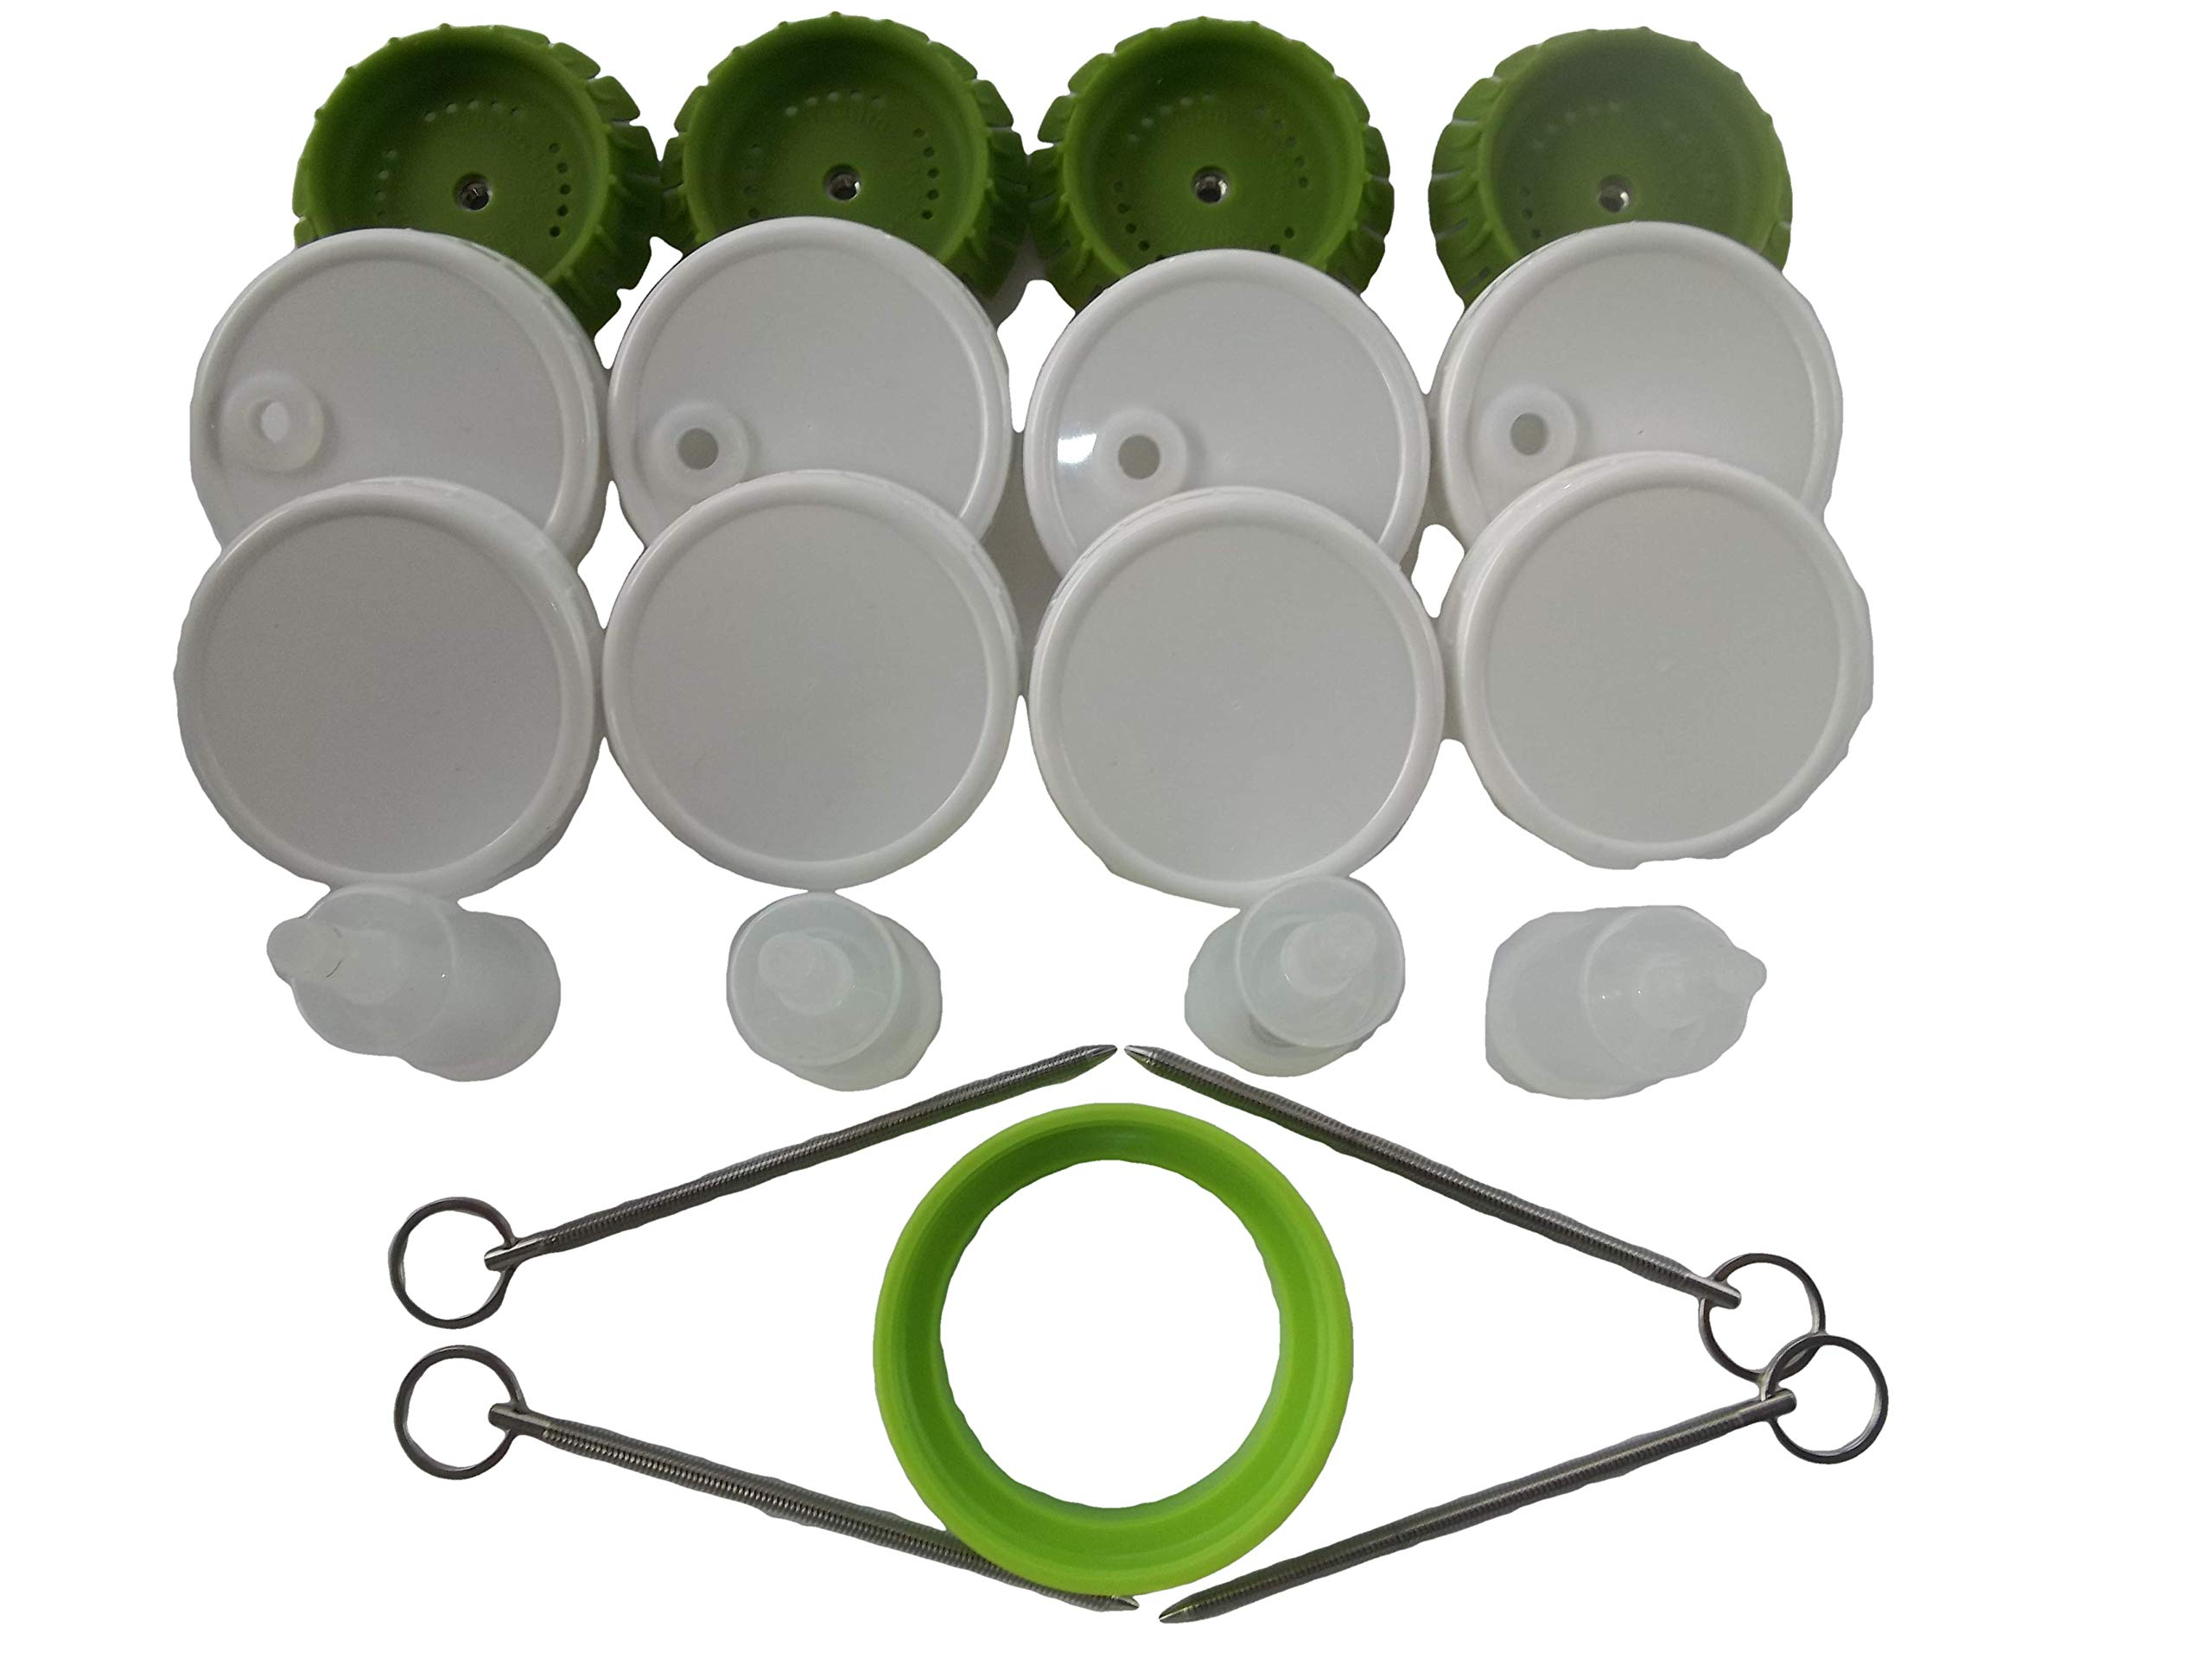 4 Pickle Pusher Small Batch Fermentation Kits. Complete with Airlock and Weight-Replacement. BPA Free. Holds 25X More Than Fermenting Weights. Fits Widemouth Mason Jars Not Included